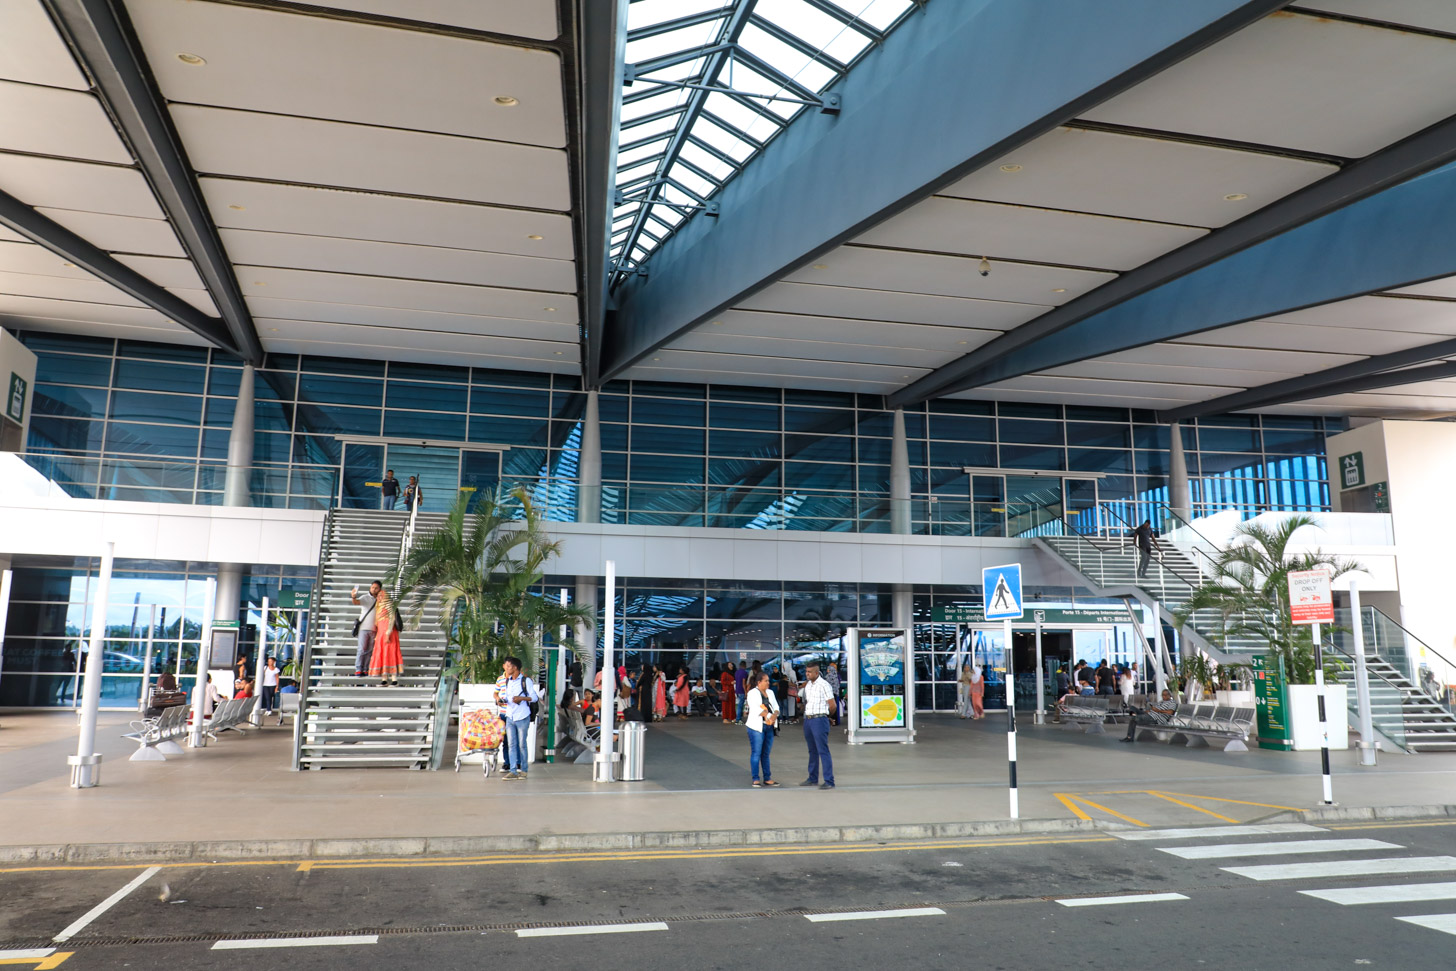 Sir Seewoosagur Ramgoolam International Airport